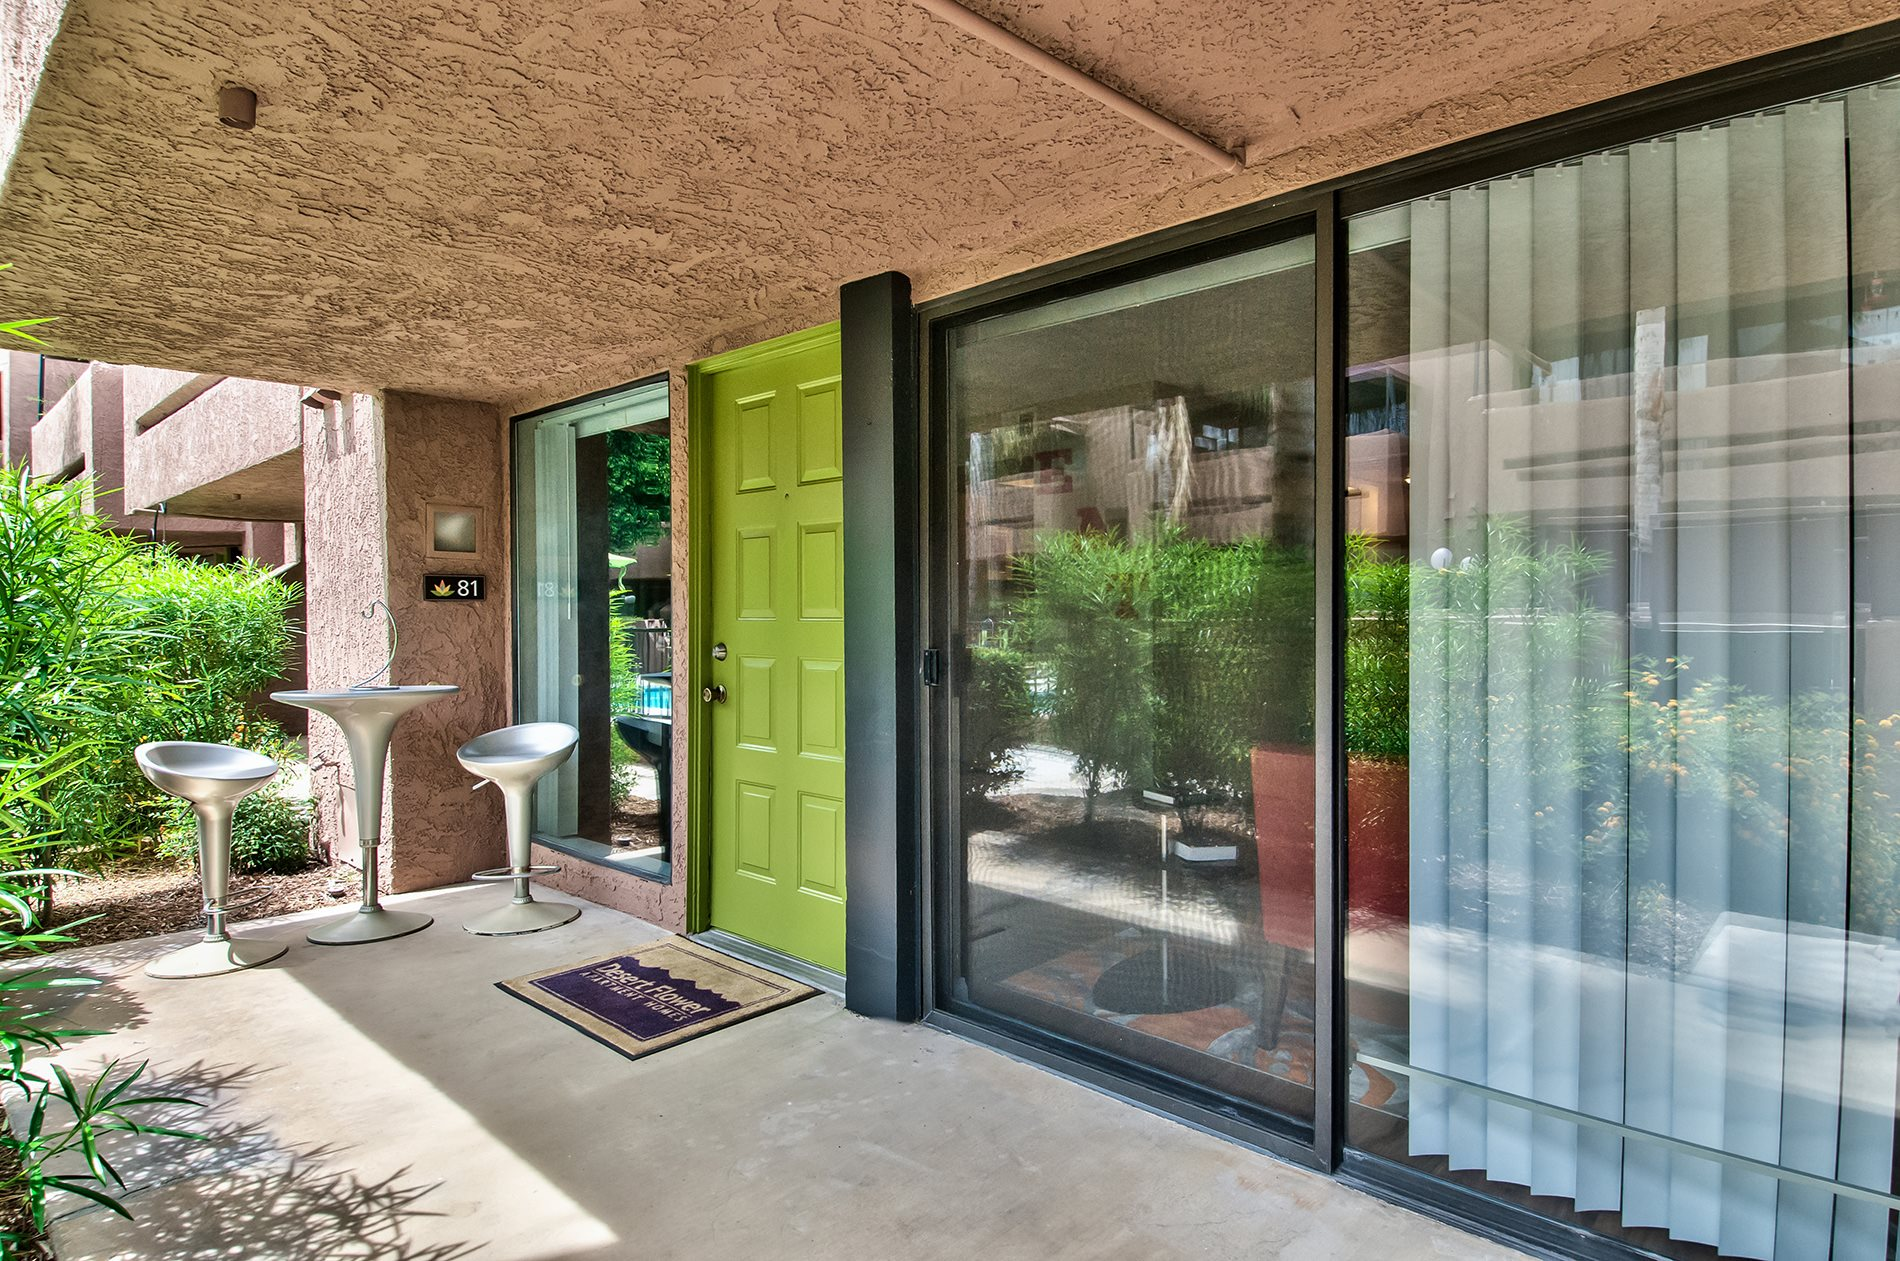 Photos And Video Of Desert Flower Apartment Homes In Palm Springs Ca